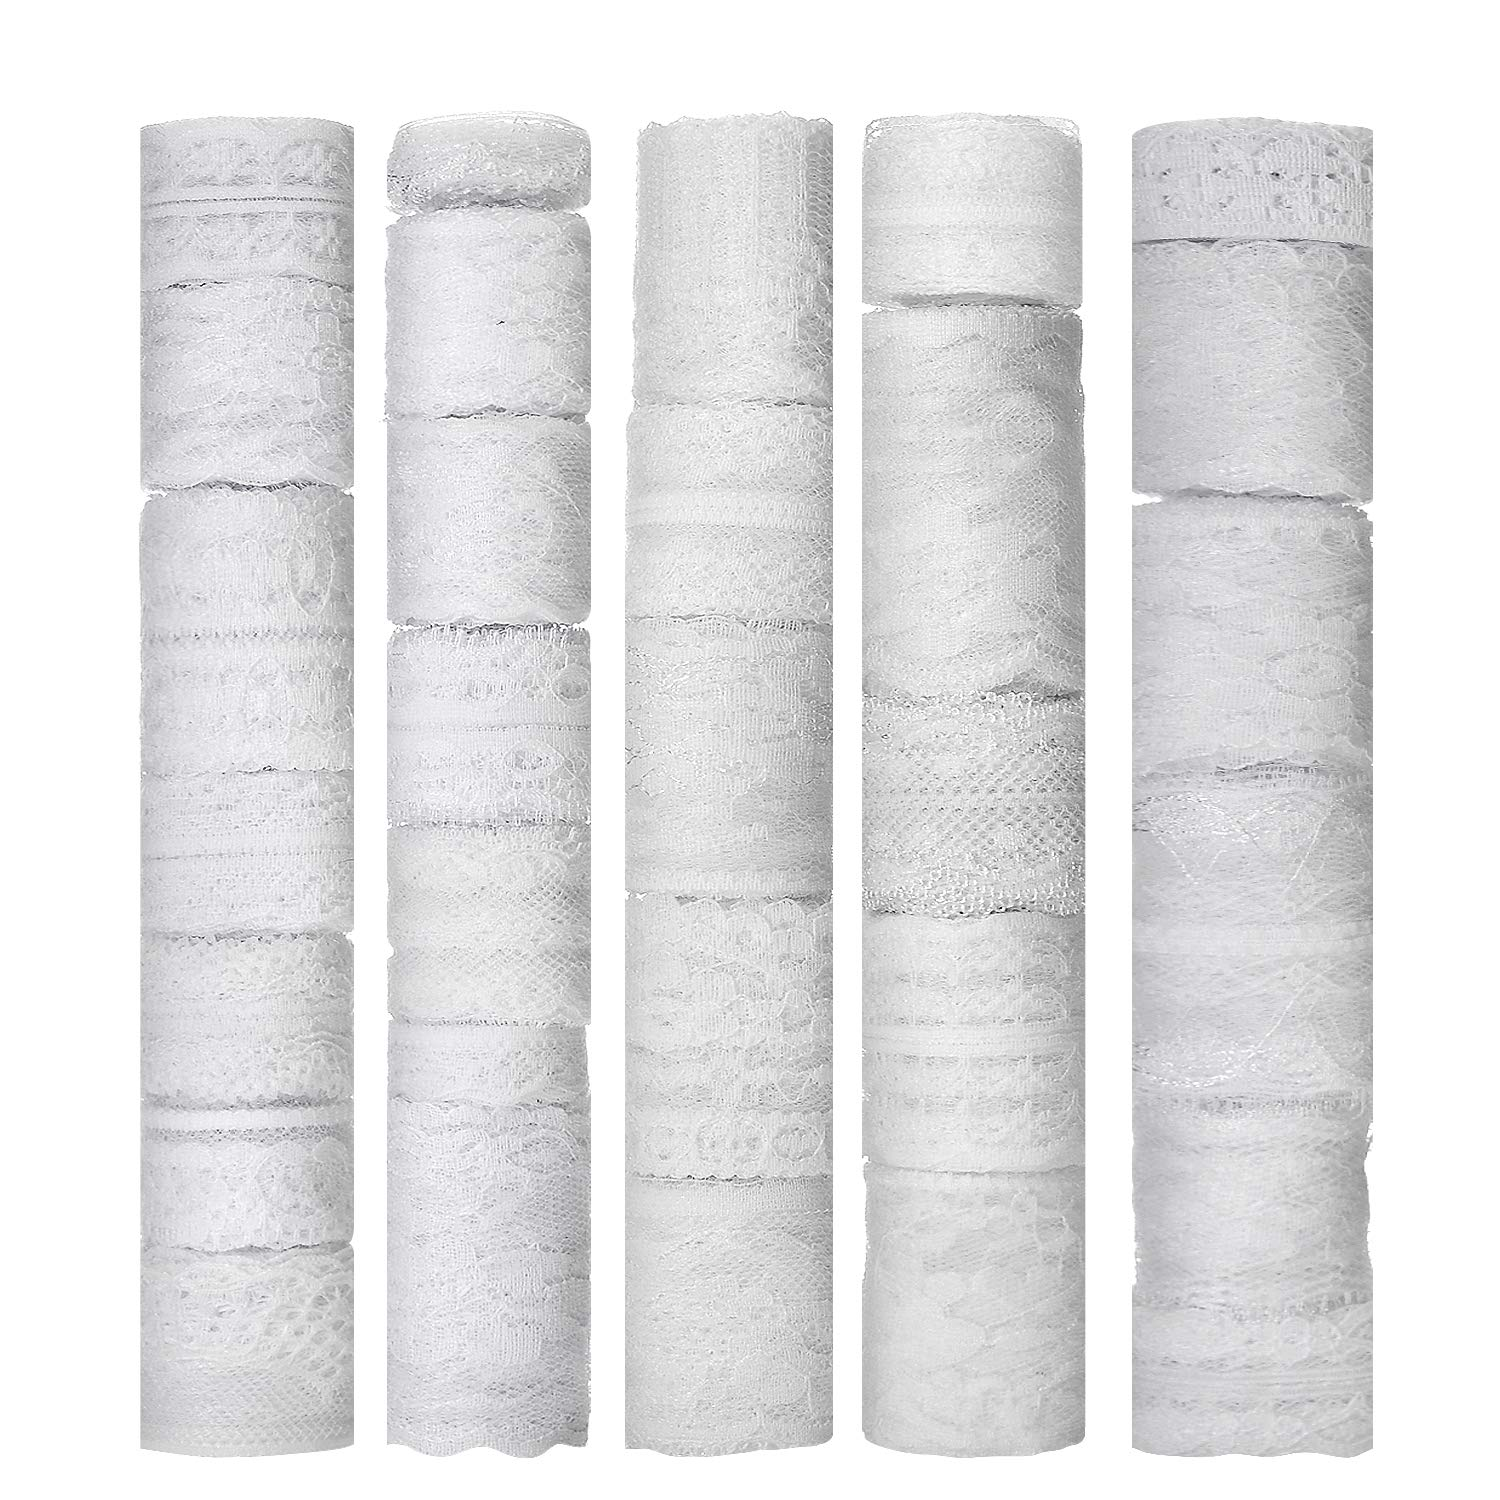 YUEAON 30 Rolls White Lace Ribbon Trim Assorted Patterns Lace Fabric for Bridal Wedding Decorations Sewing DIY Making 90 Yards by YUEAON